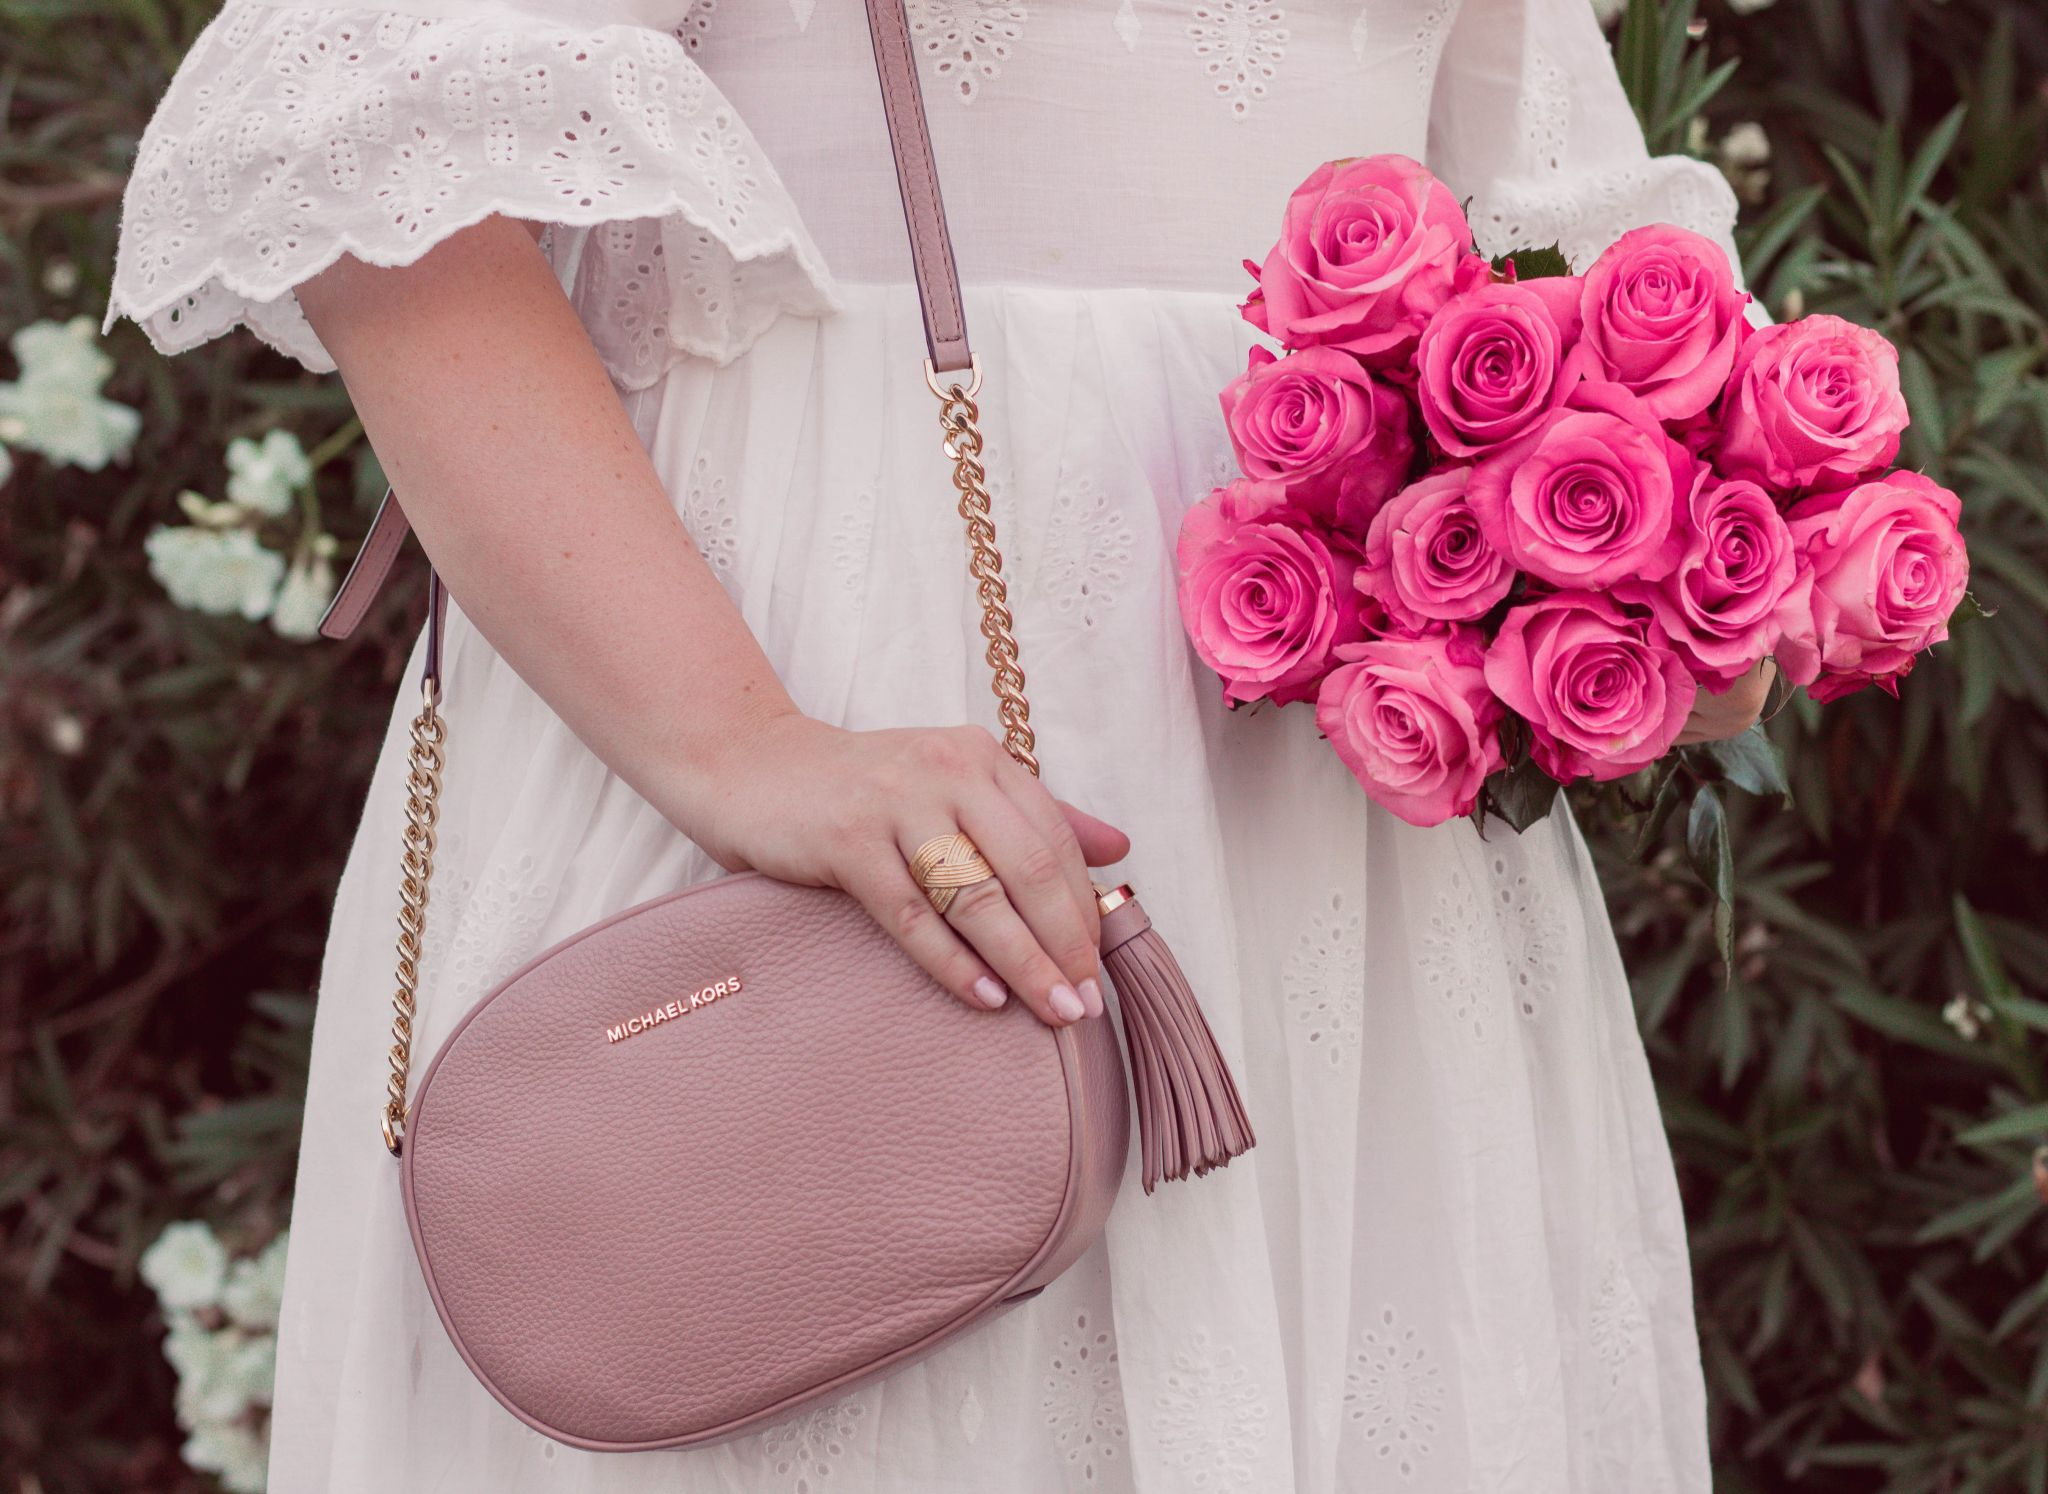 Fashion Blogger Elizabeth Hugen of Lizzie in Lace shares her girly handbag collection including this blush Michael Kors handbag